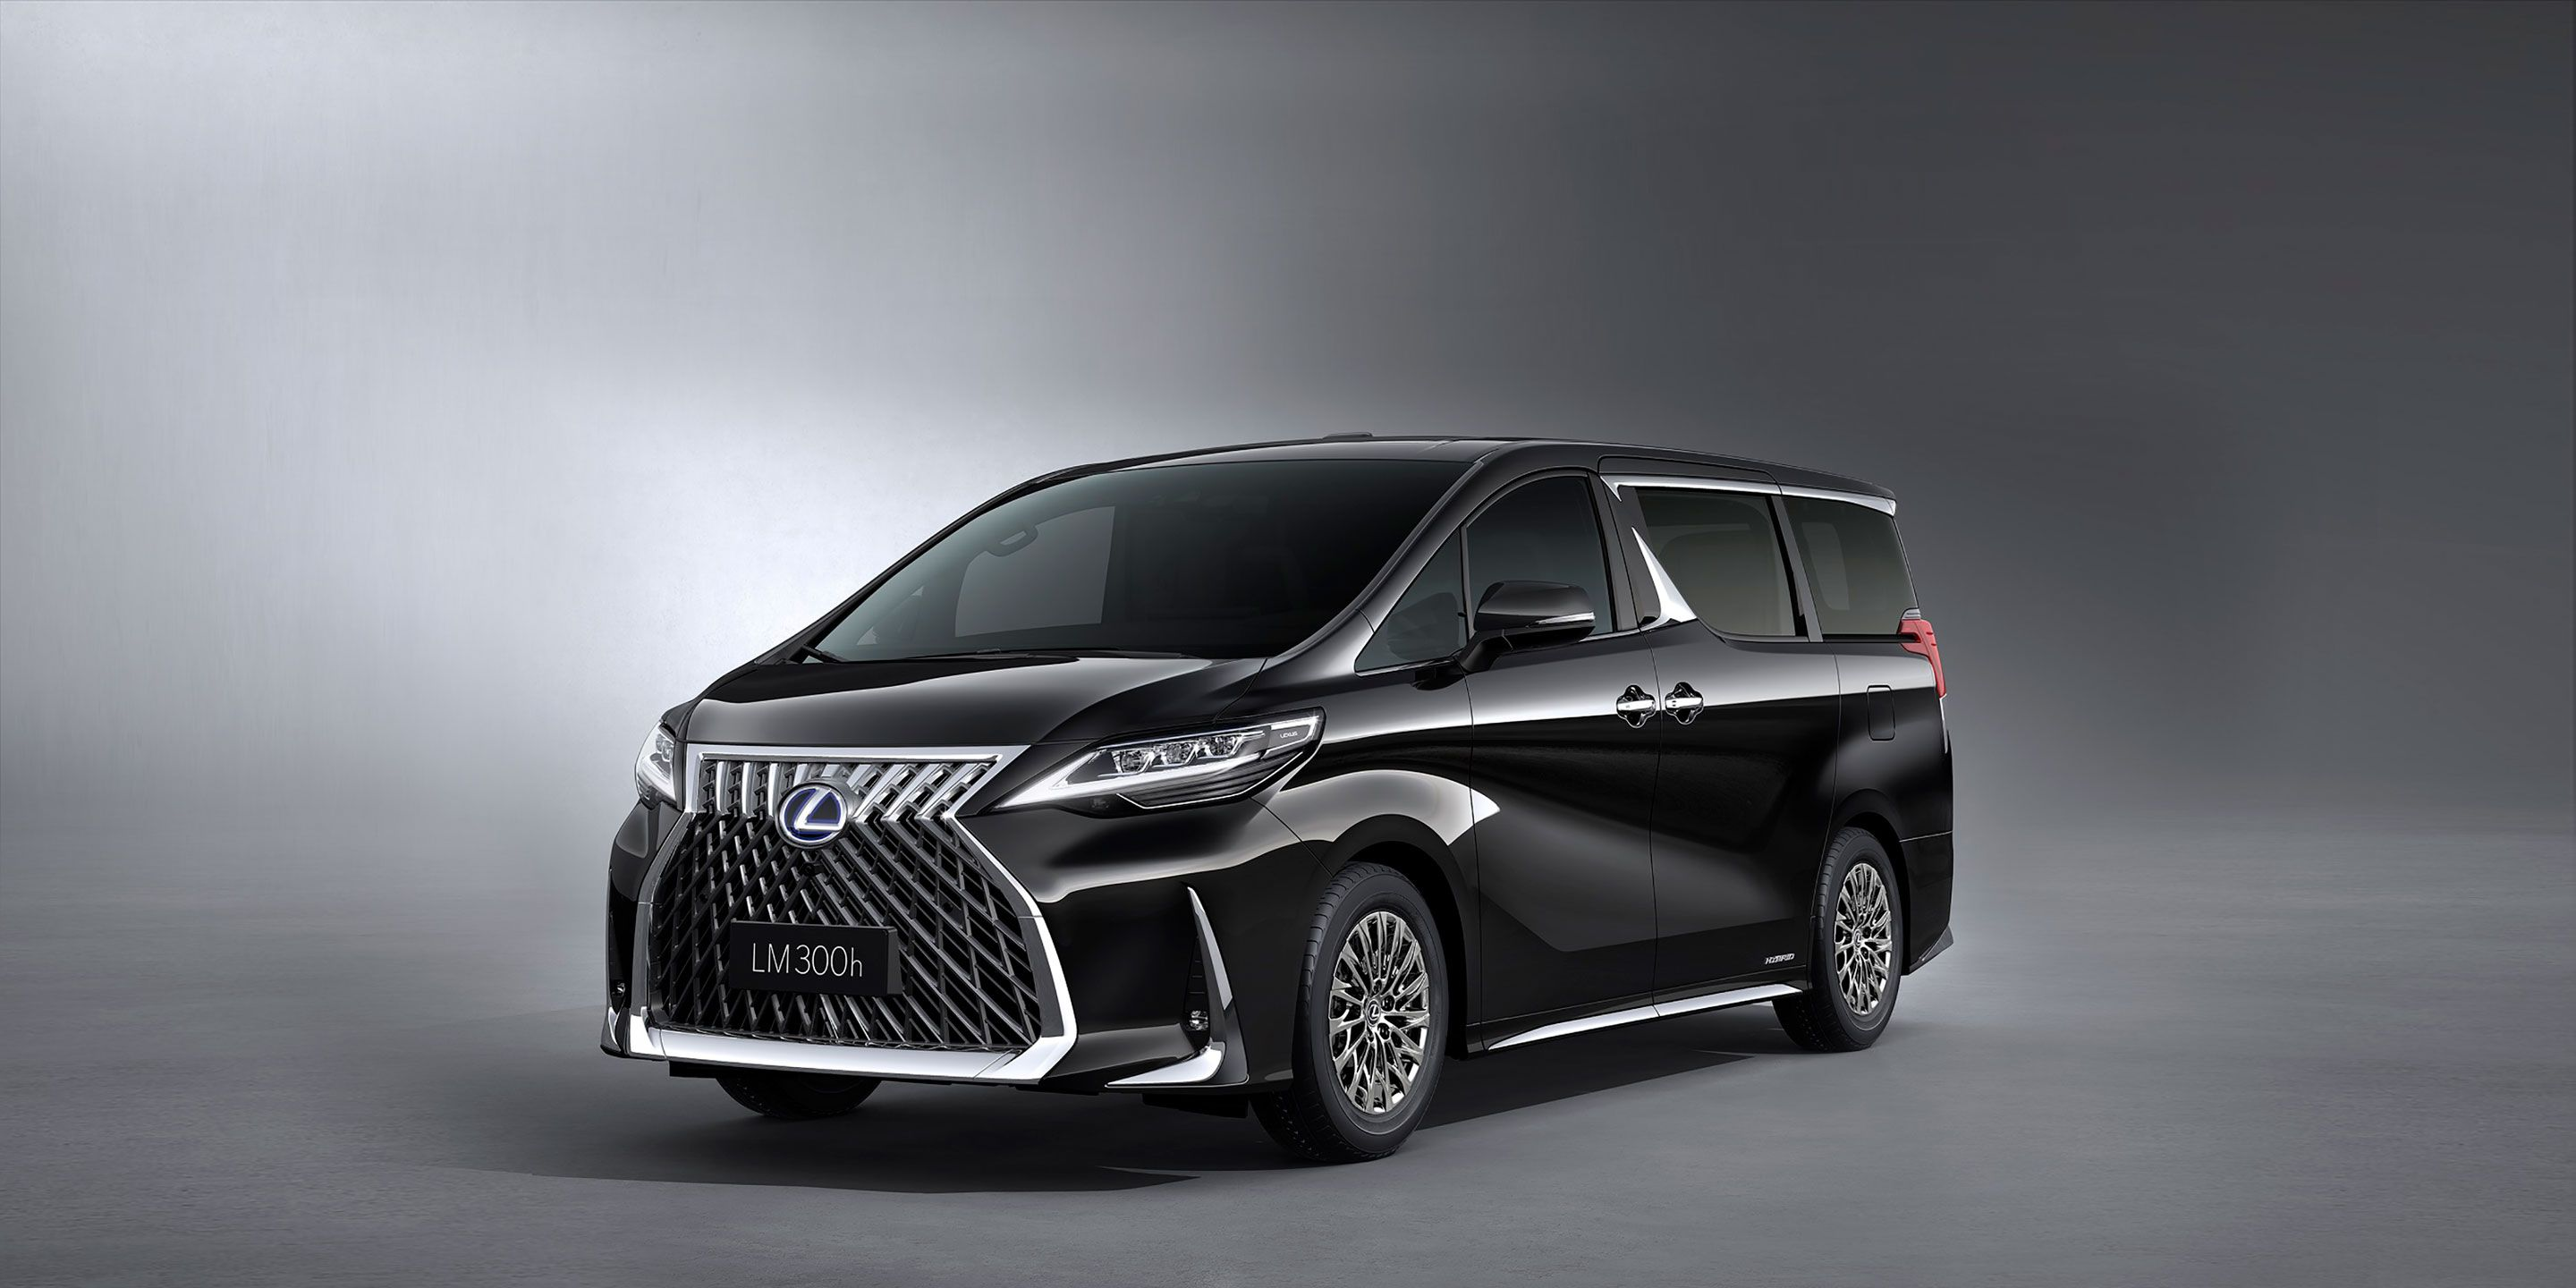 Lexus LM Minivan: We'd Describe It to You, But Really You Should Just Take a Look for Yourself